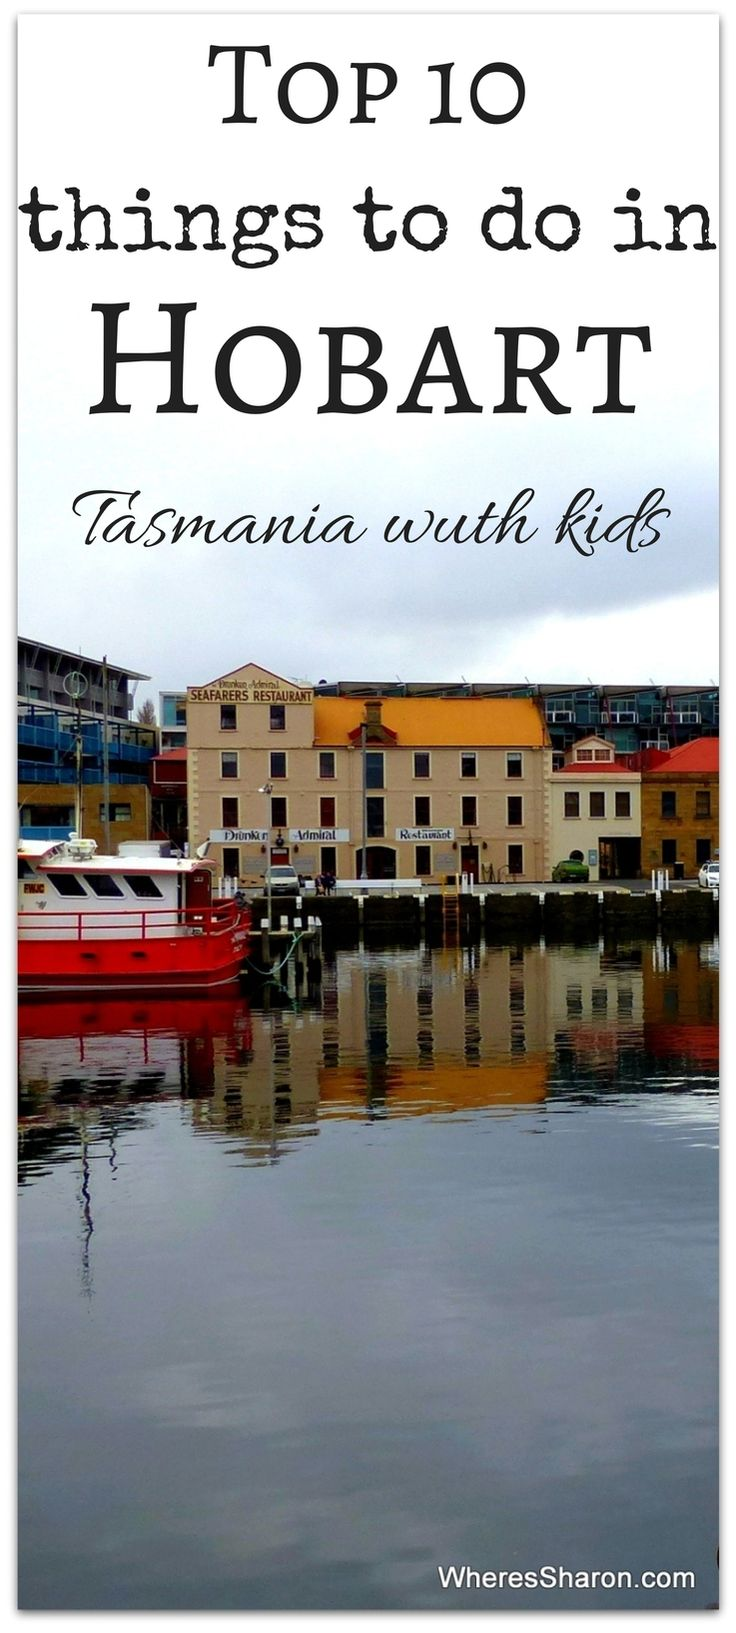 This is a beautiful port town.  Our top 10 things to do in Hobart, Tasmania with kids http://www.wheressharon.com/australian-travels/things-to-do-in-tasmania/things-to-do-in-hobart-with-kids/ #familytravel #Tasmania #Hobart